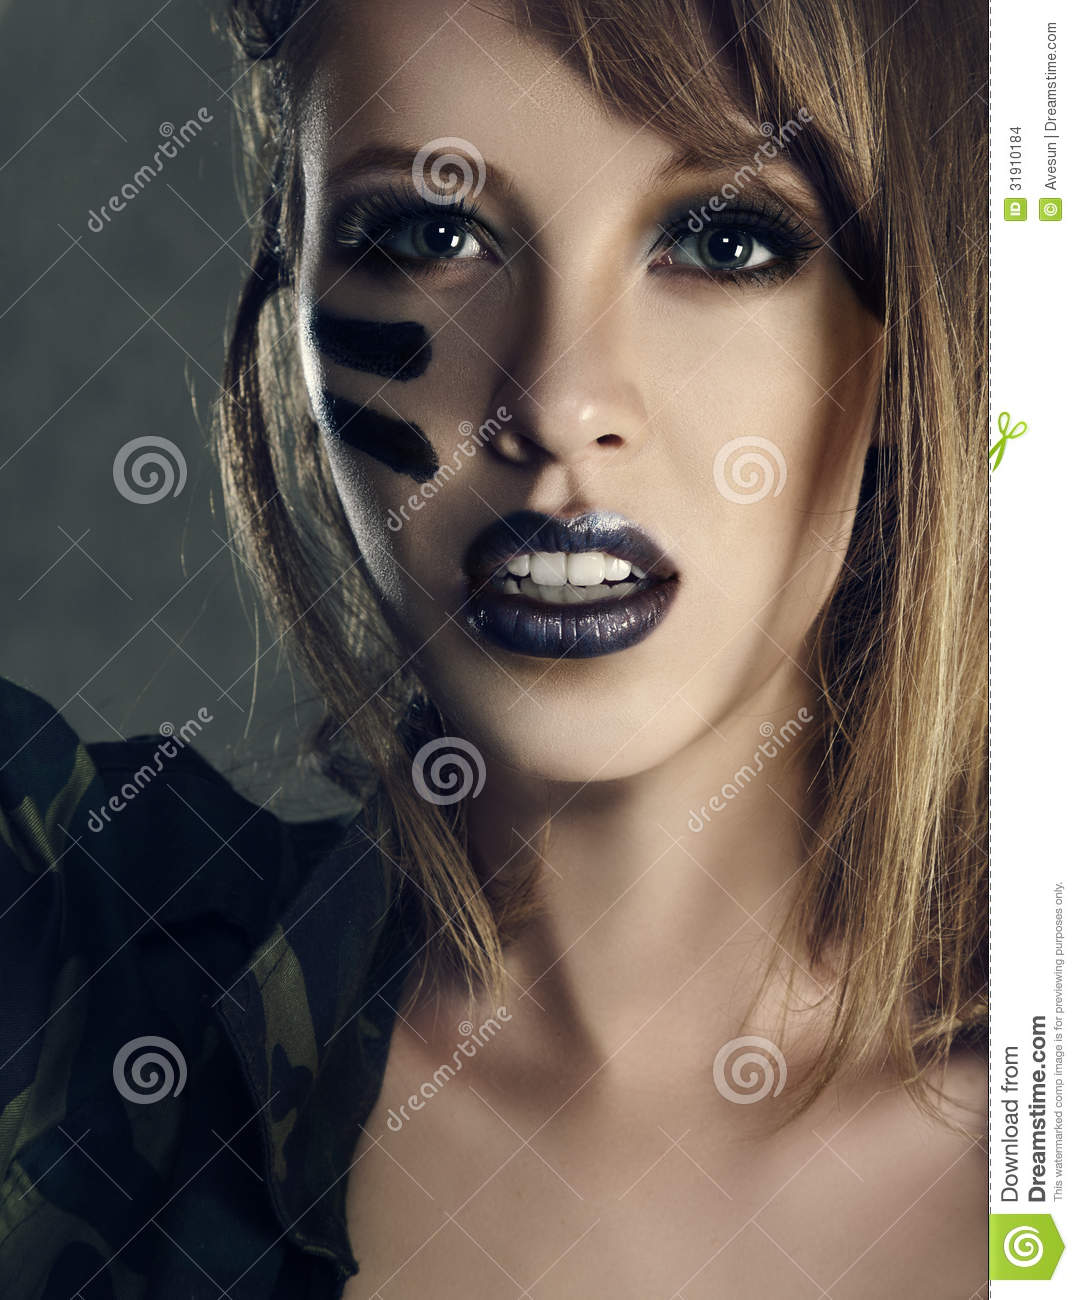 maquillage femme armee